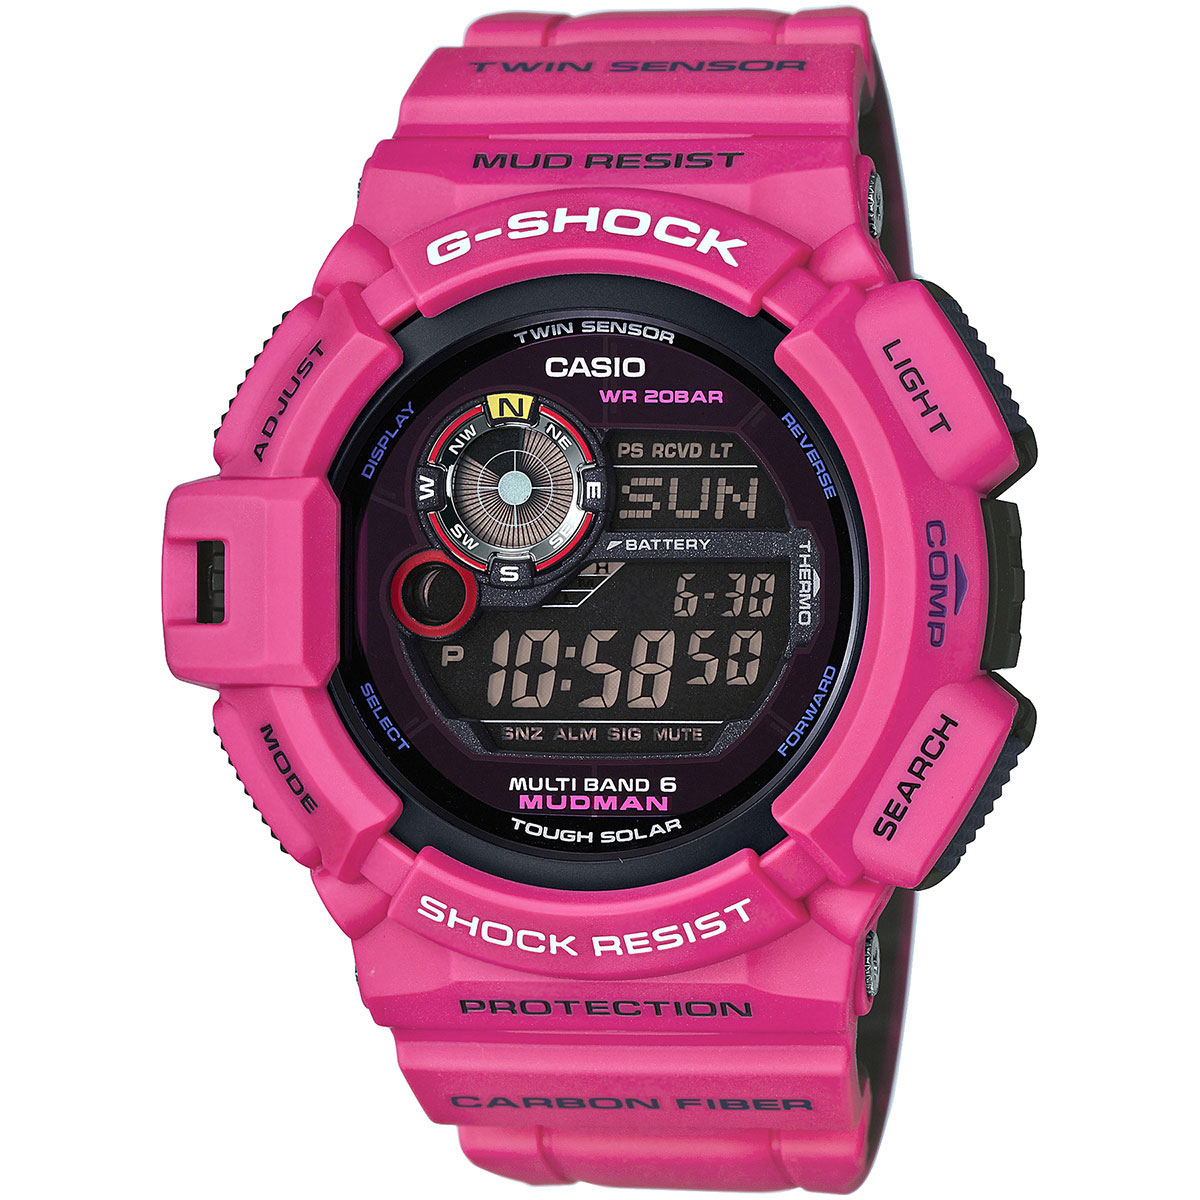 Casio G-shock Mudman GW-9300SR-4E abnormal psychology 4e